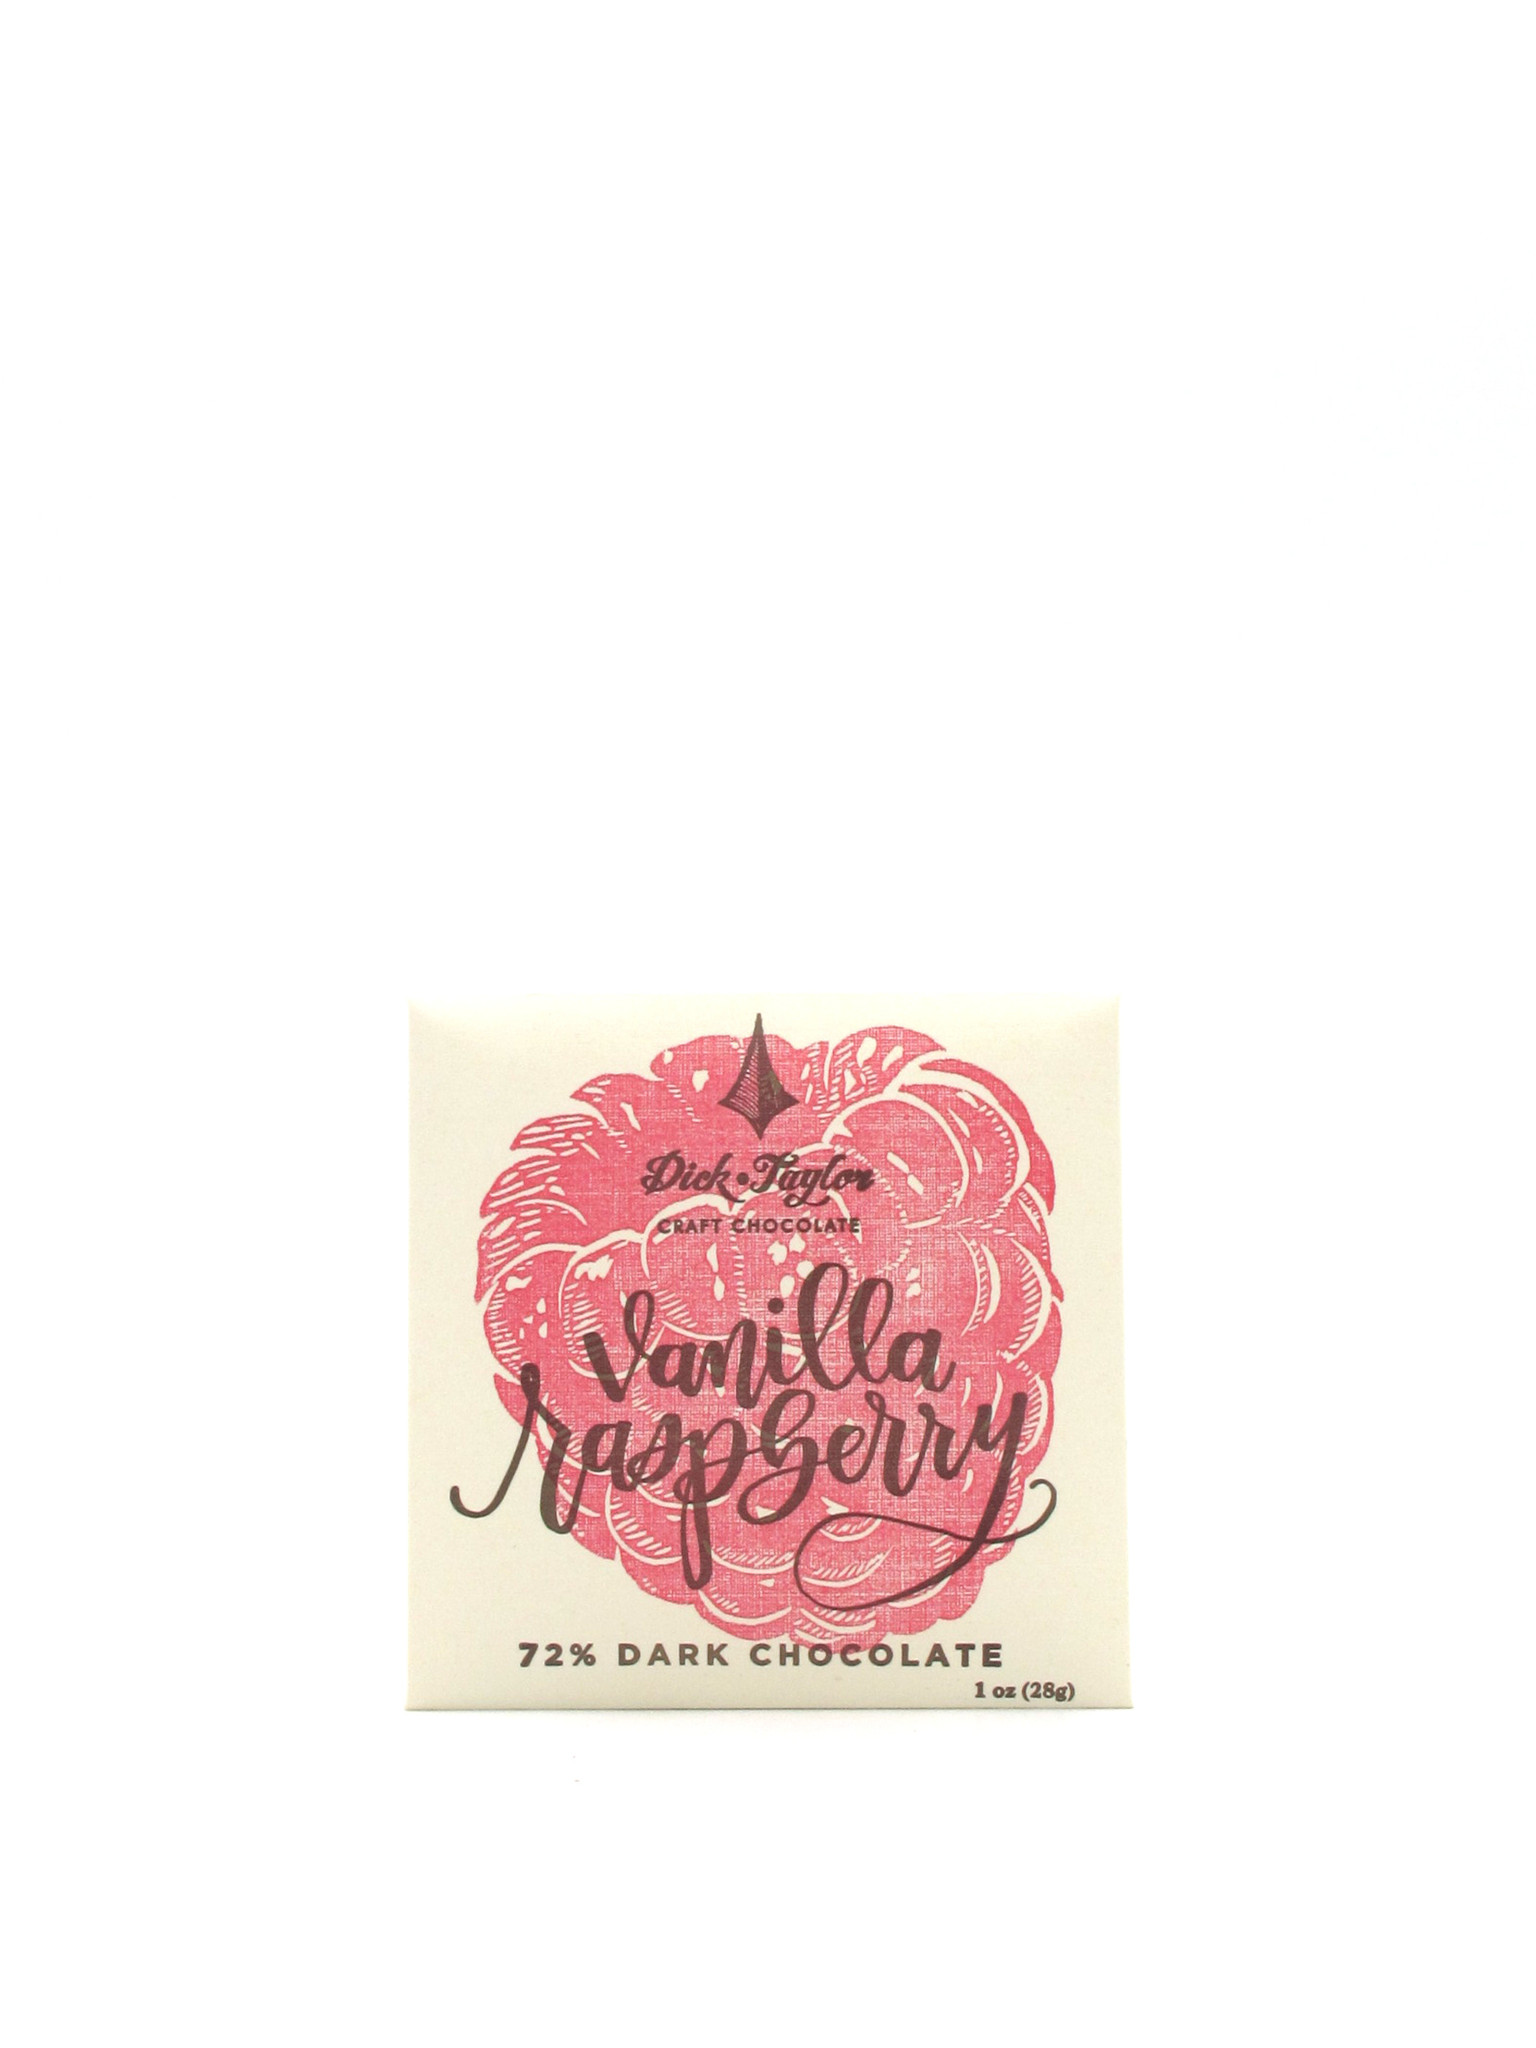 Dick Taylor Craft Chocolate Dick Taylor Vanilla Raspberry 72% Dark Chocolate 1oz